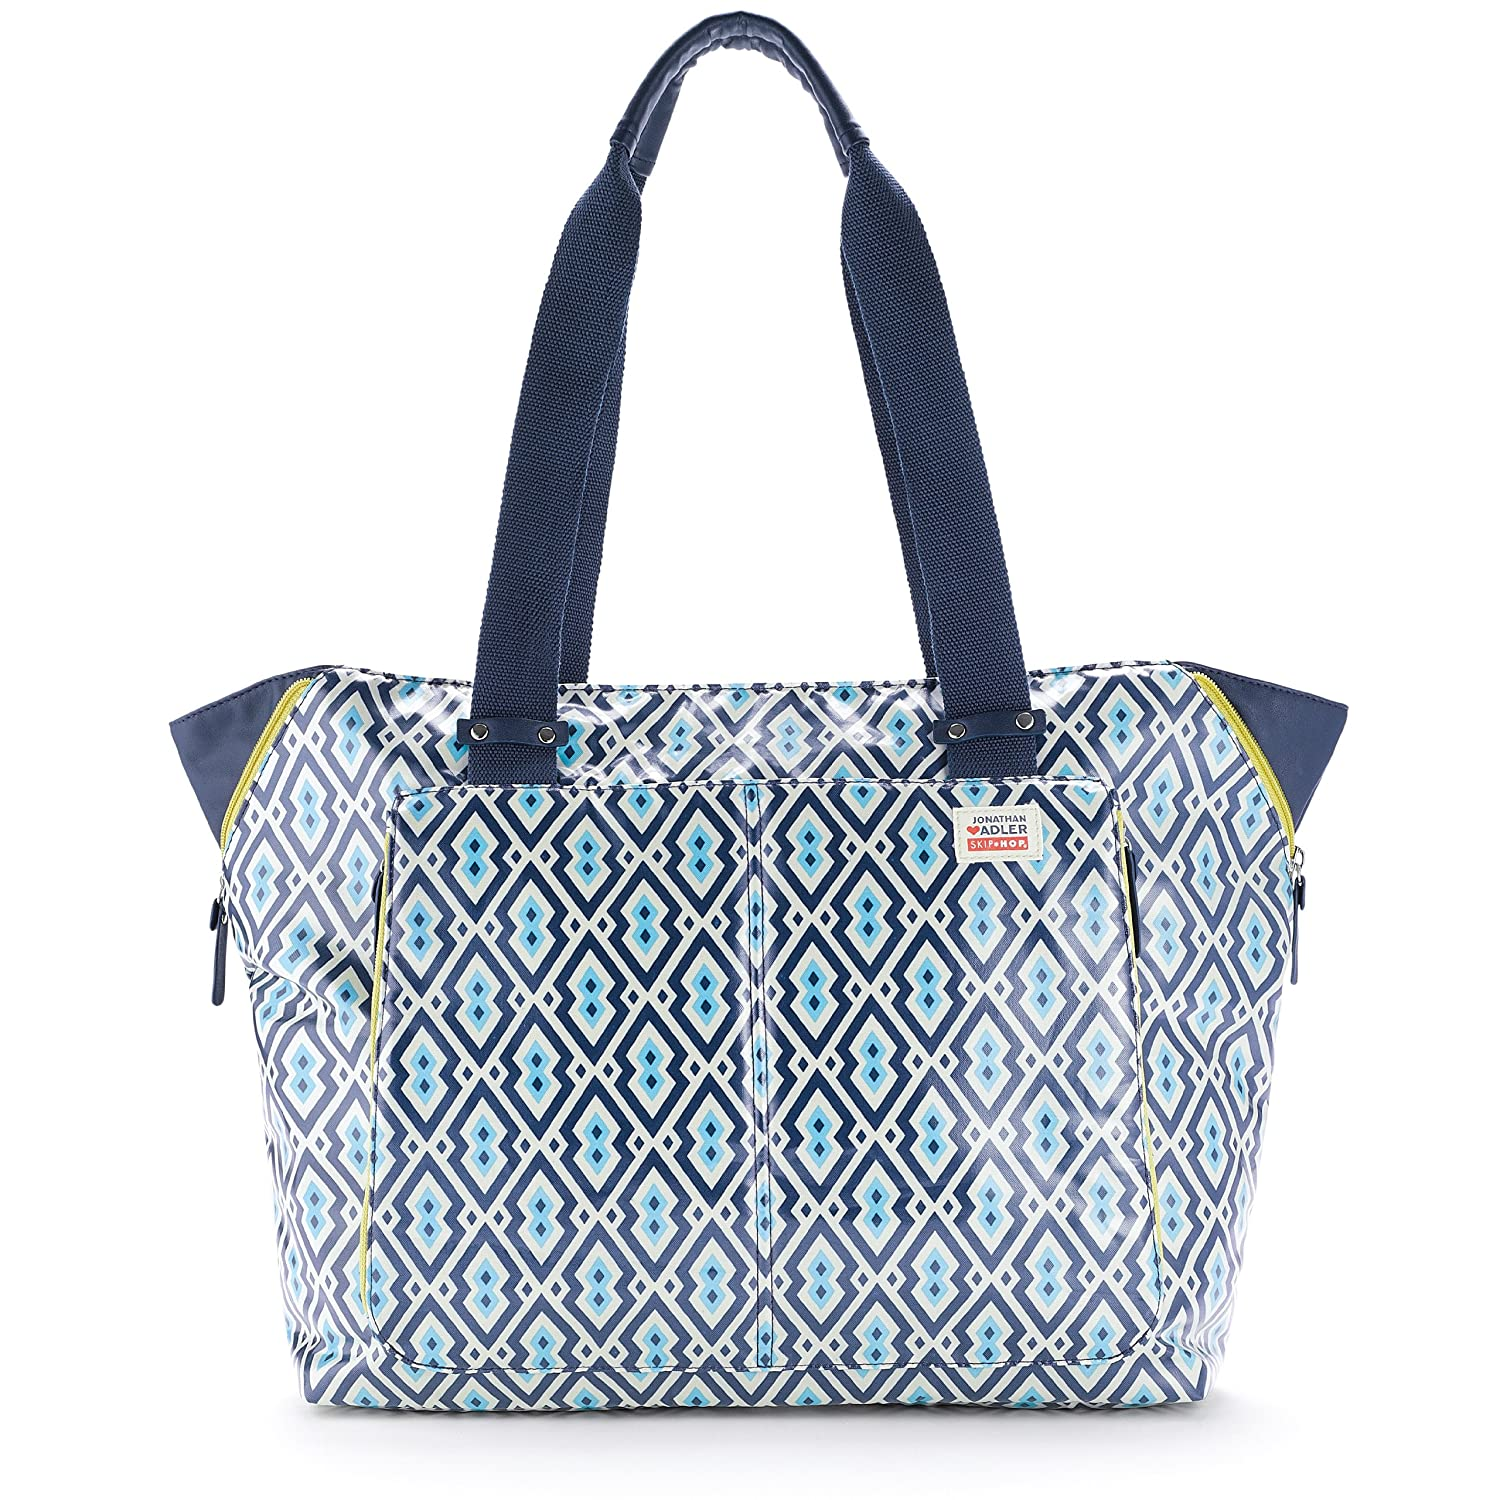 Skip Hop Jonathan Adler Light and Luxe Diaper Tote, Syrie (Discontinued by Manufacturer)